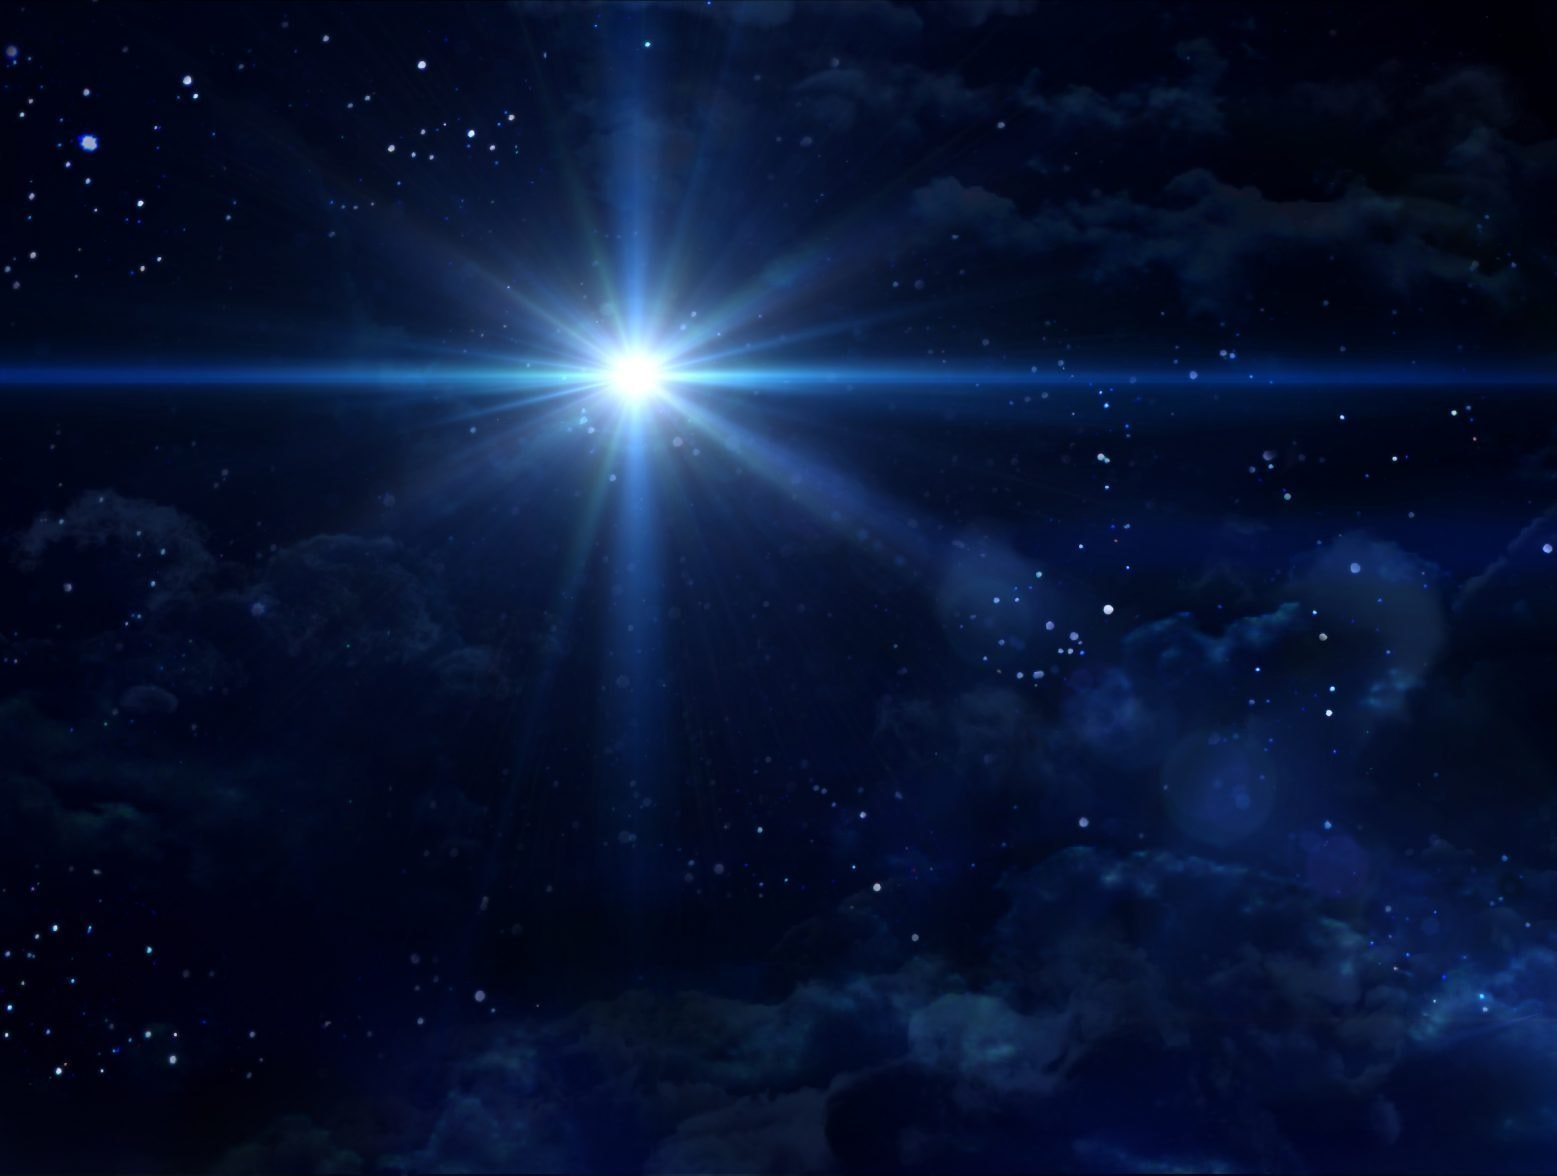 an actual  u0026 39 christmas star u0026 39  will be in the sky on december 21